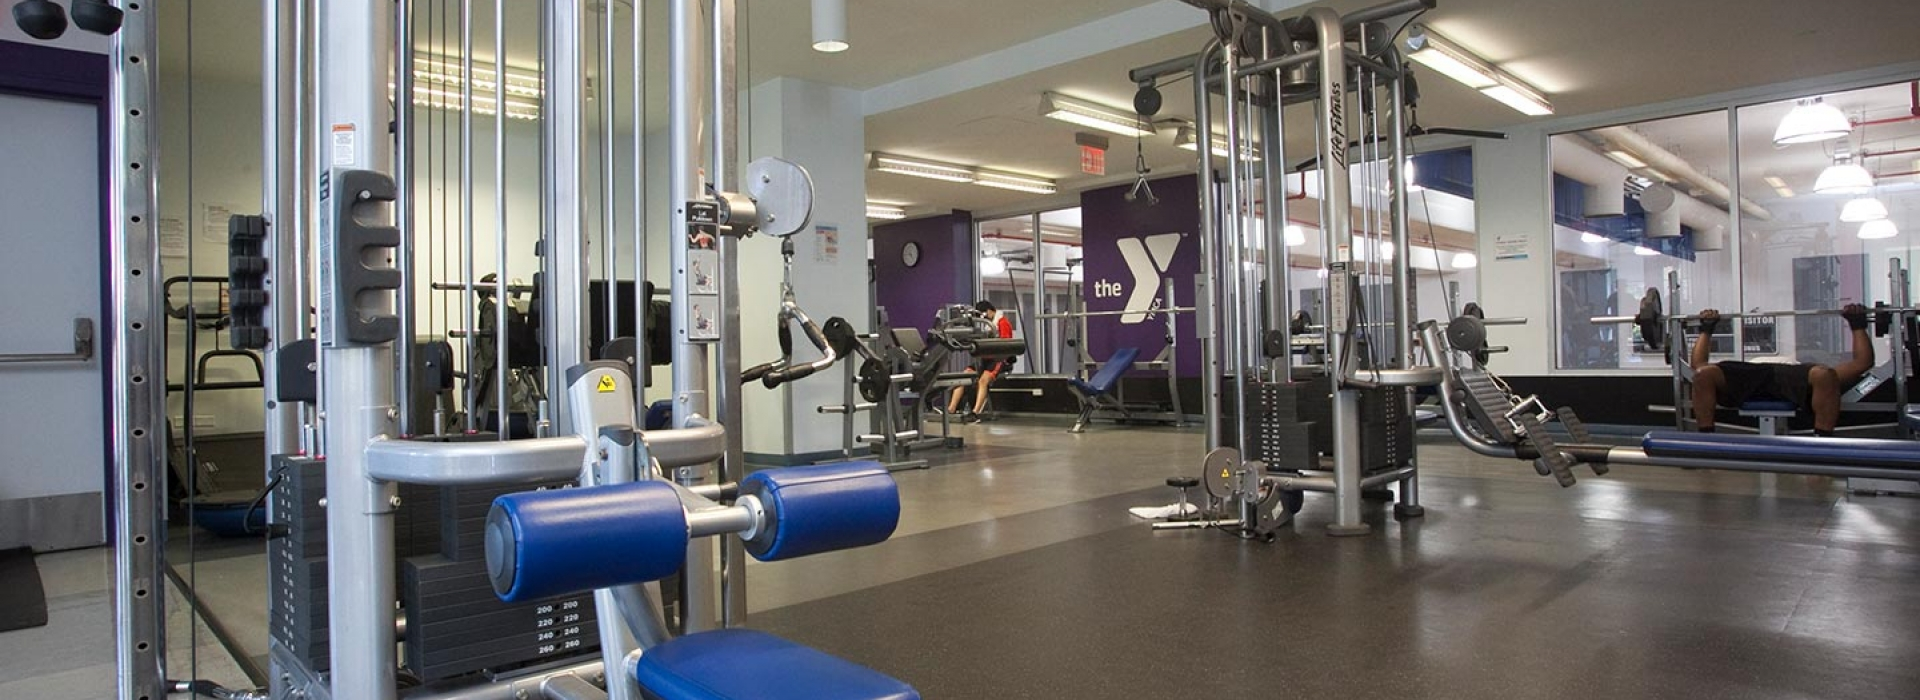 About Dodge | NEW YORK CITY'S YMCA